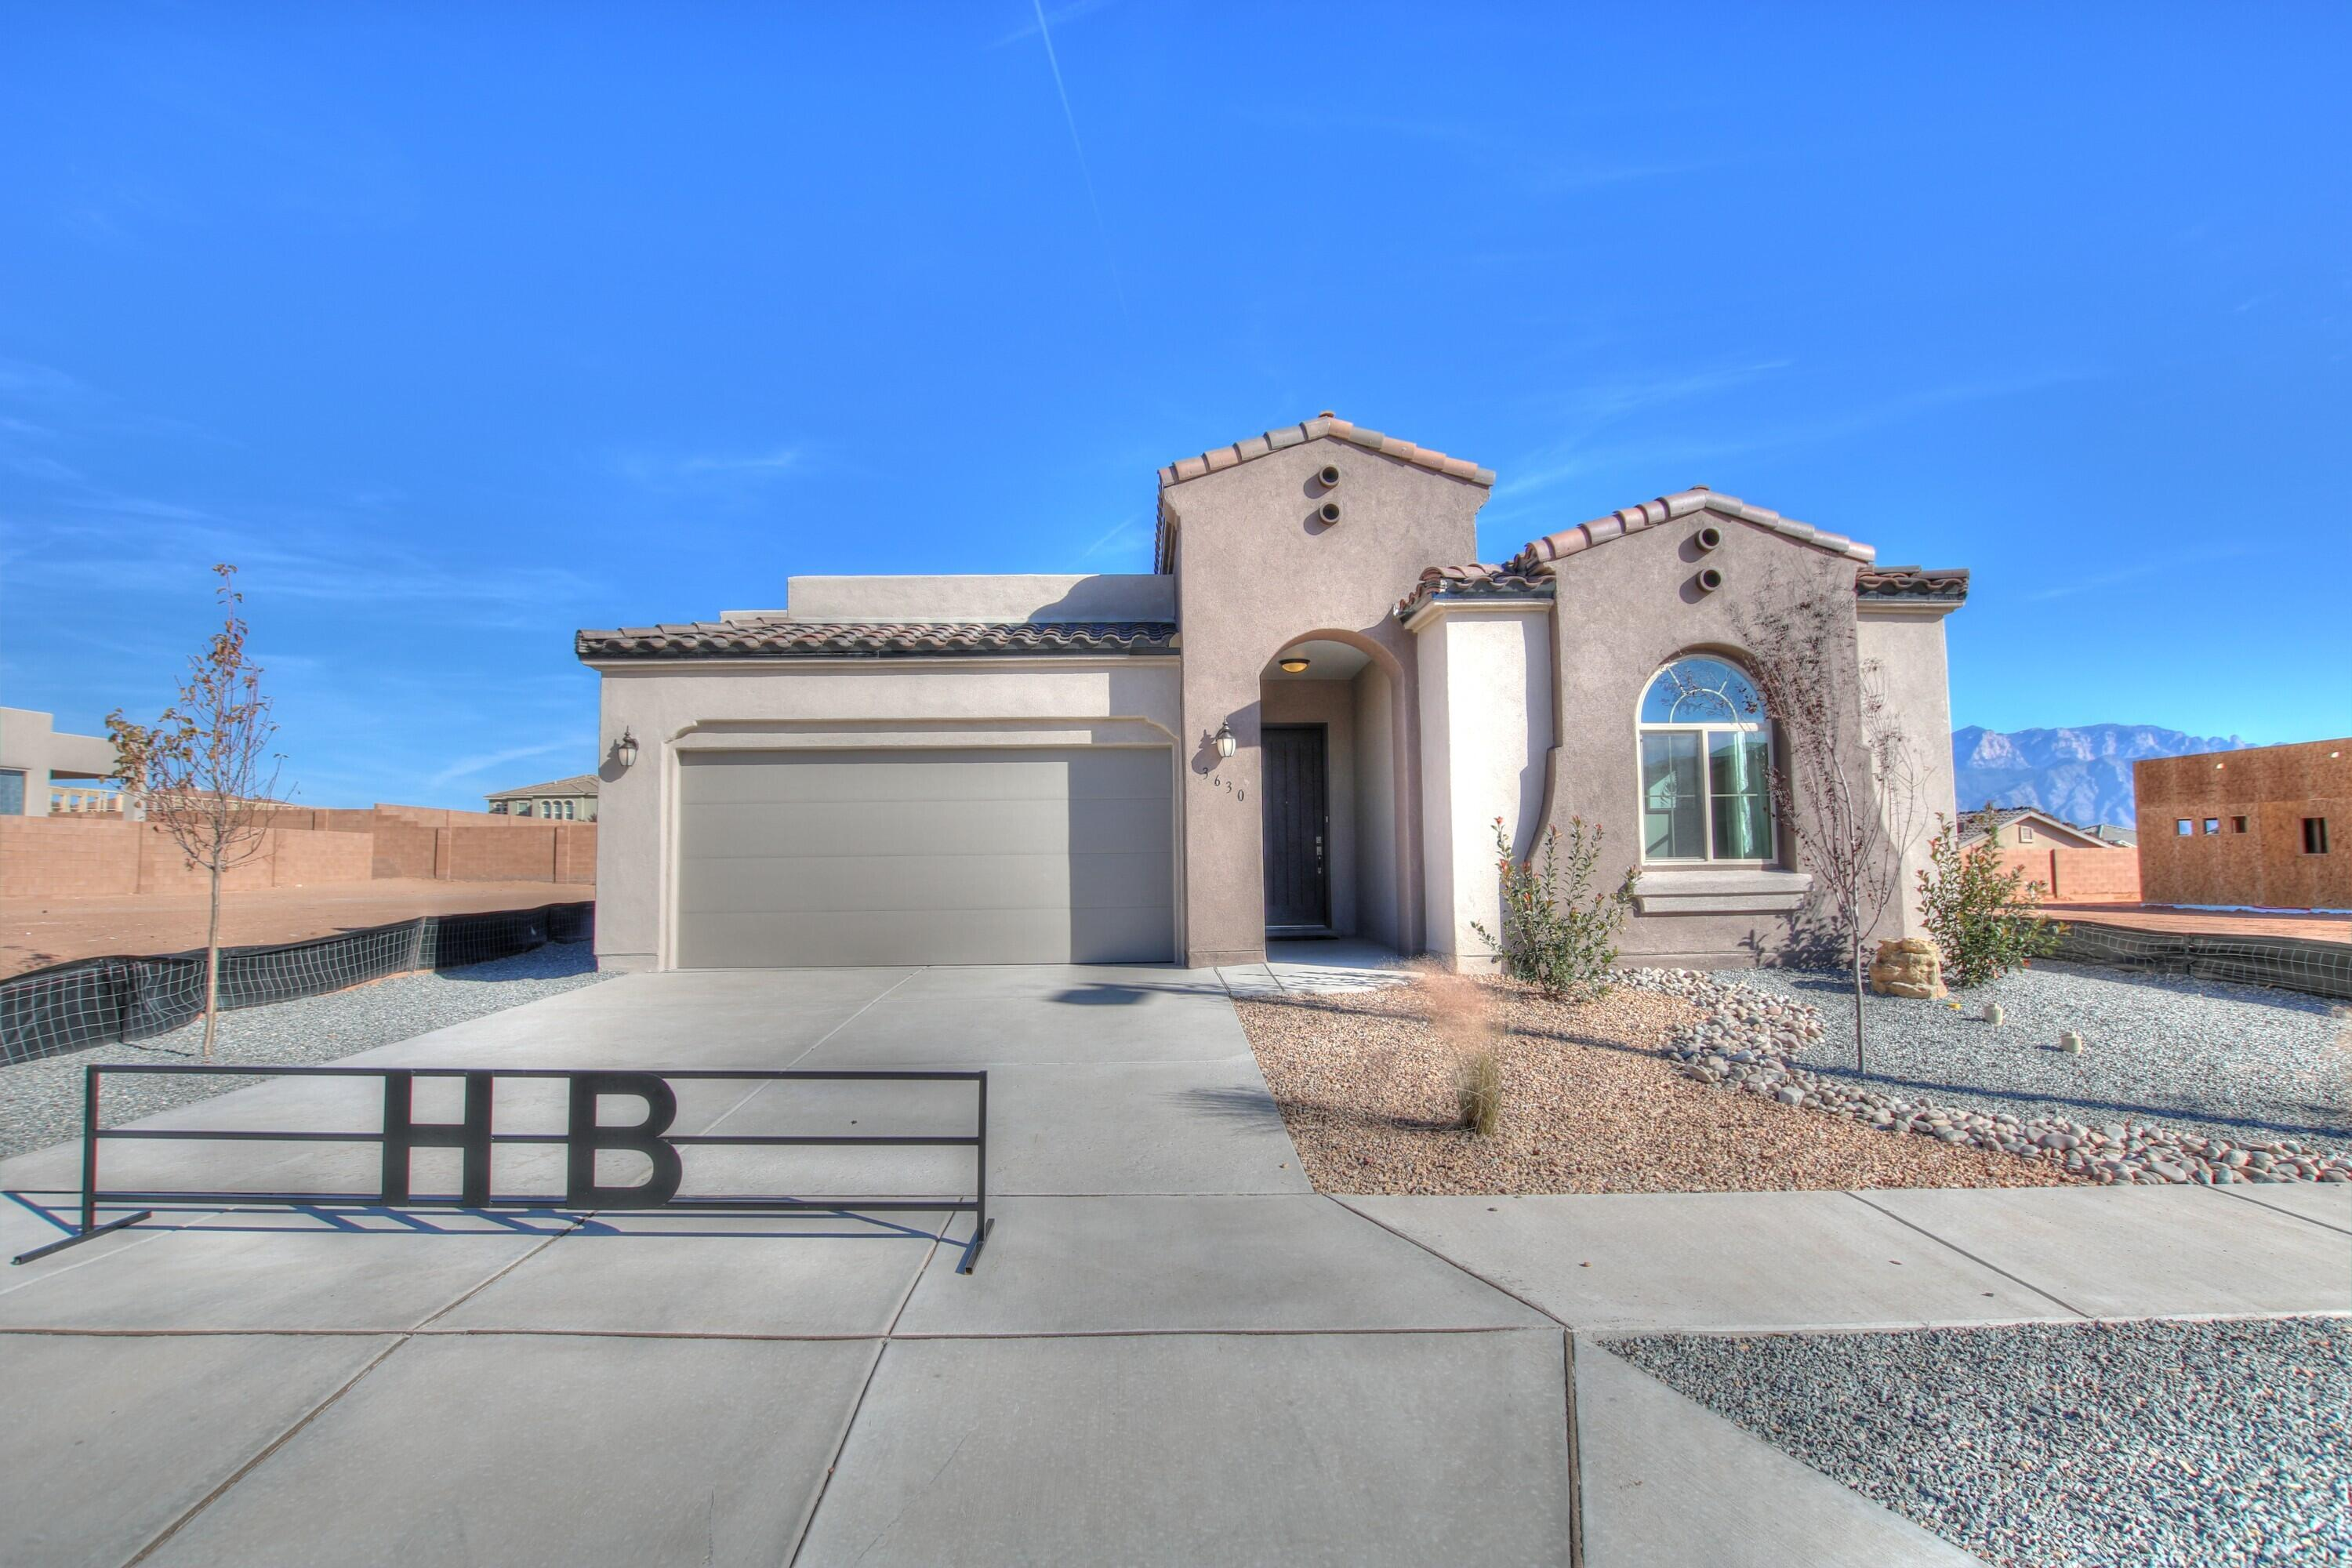 4 br 2.5 bath 2 car garageTiled fireplace, gourmet kitchen with farm sink, upgraded kitchen granite, 8' doors, upgraded tileEstimated completion 01/01/2022(photos are not of actual home but represent the floor plan)